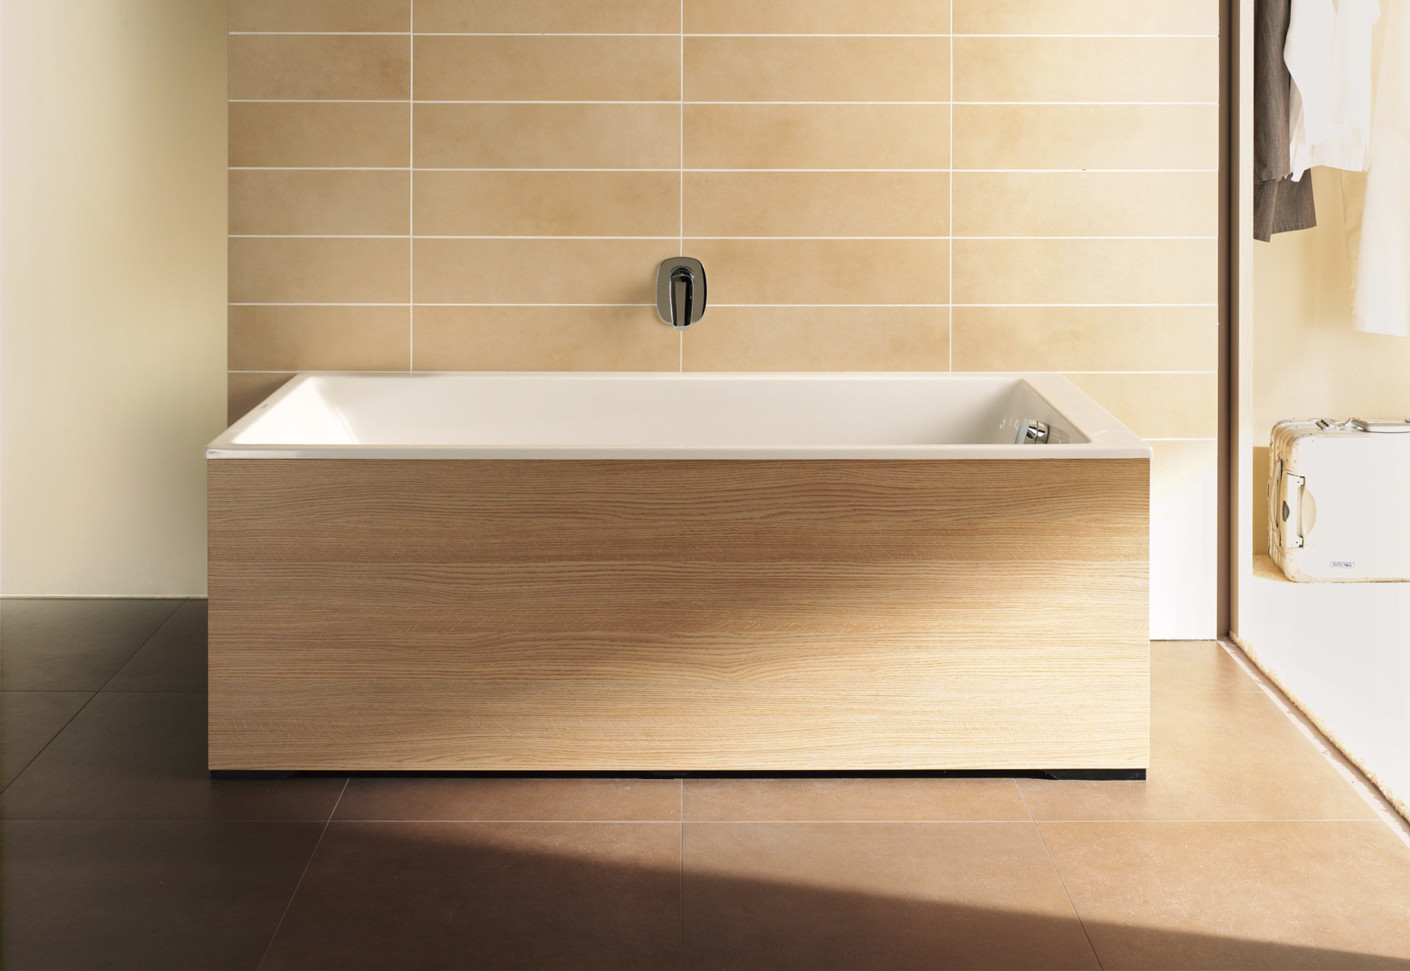 installation tub architec reviews marcstan duravit bathtub bidet toilet